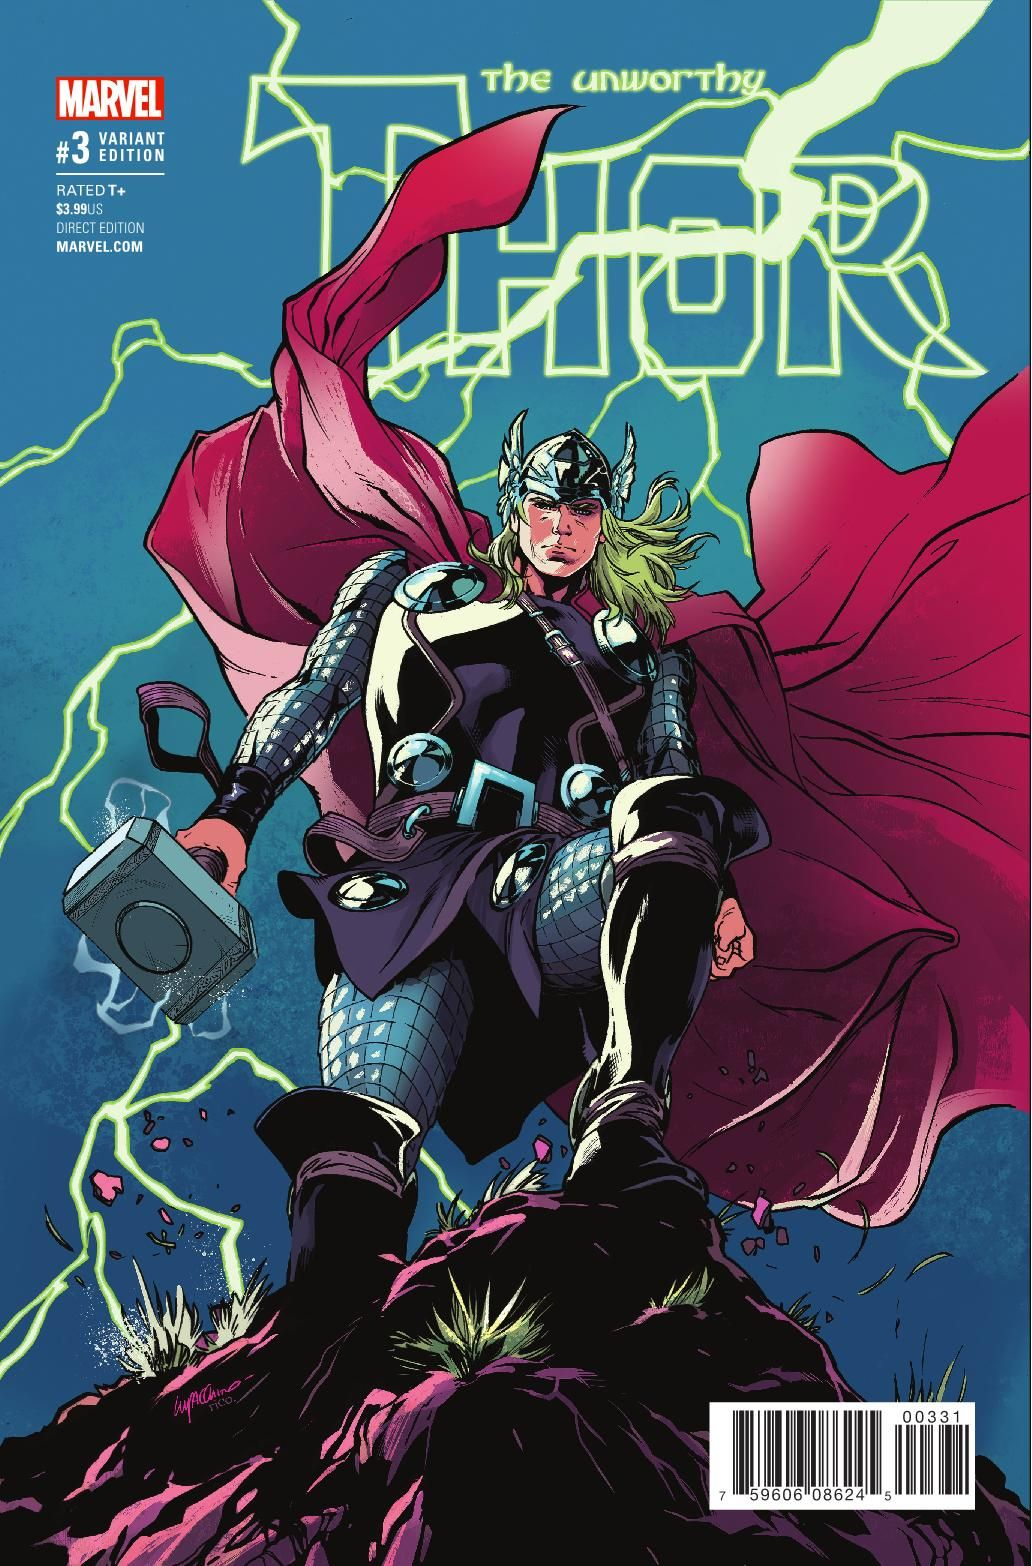 Preview The Unworthy Thor 3, Story Jason Aaron Art R.B